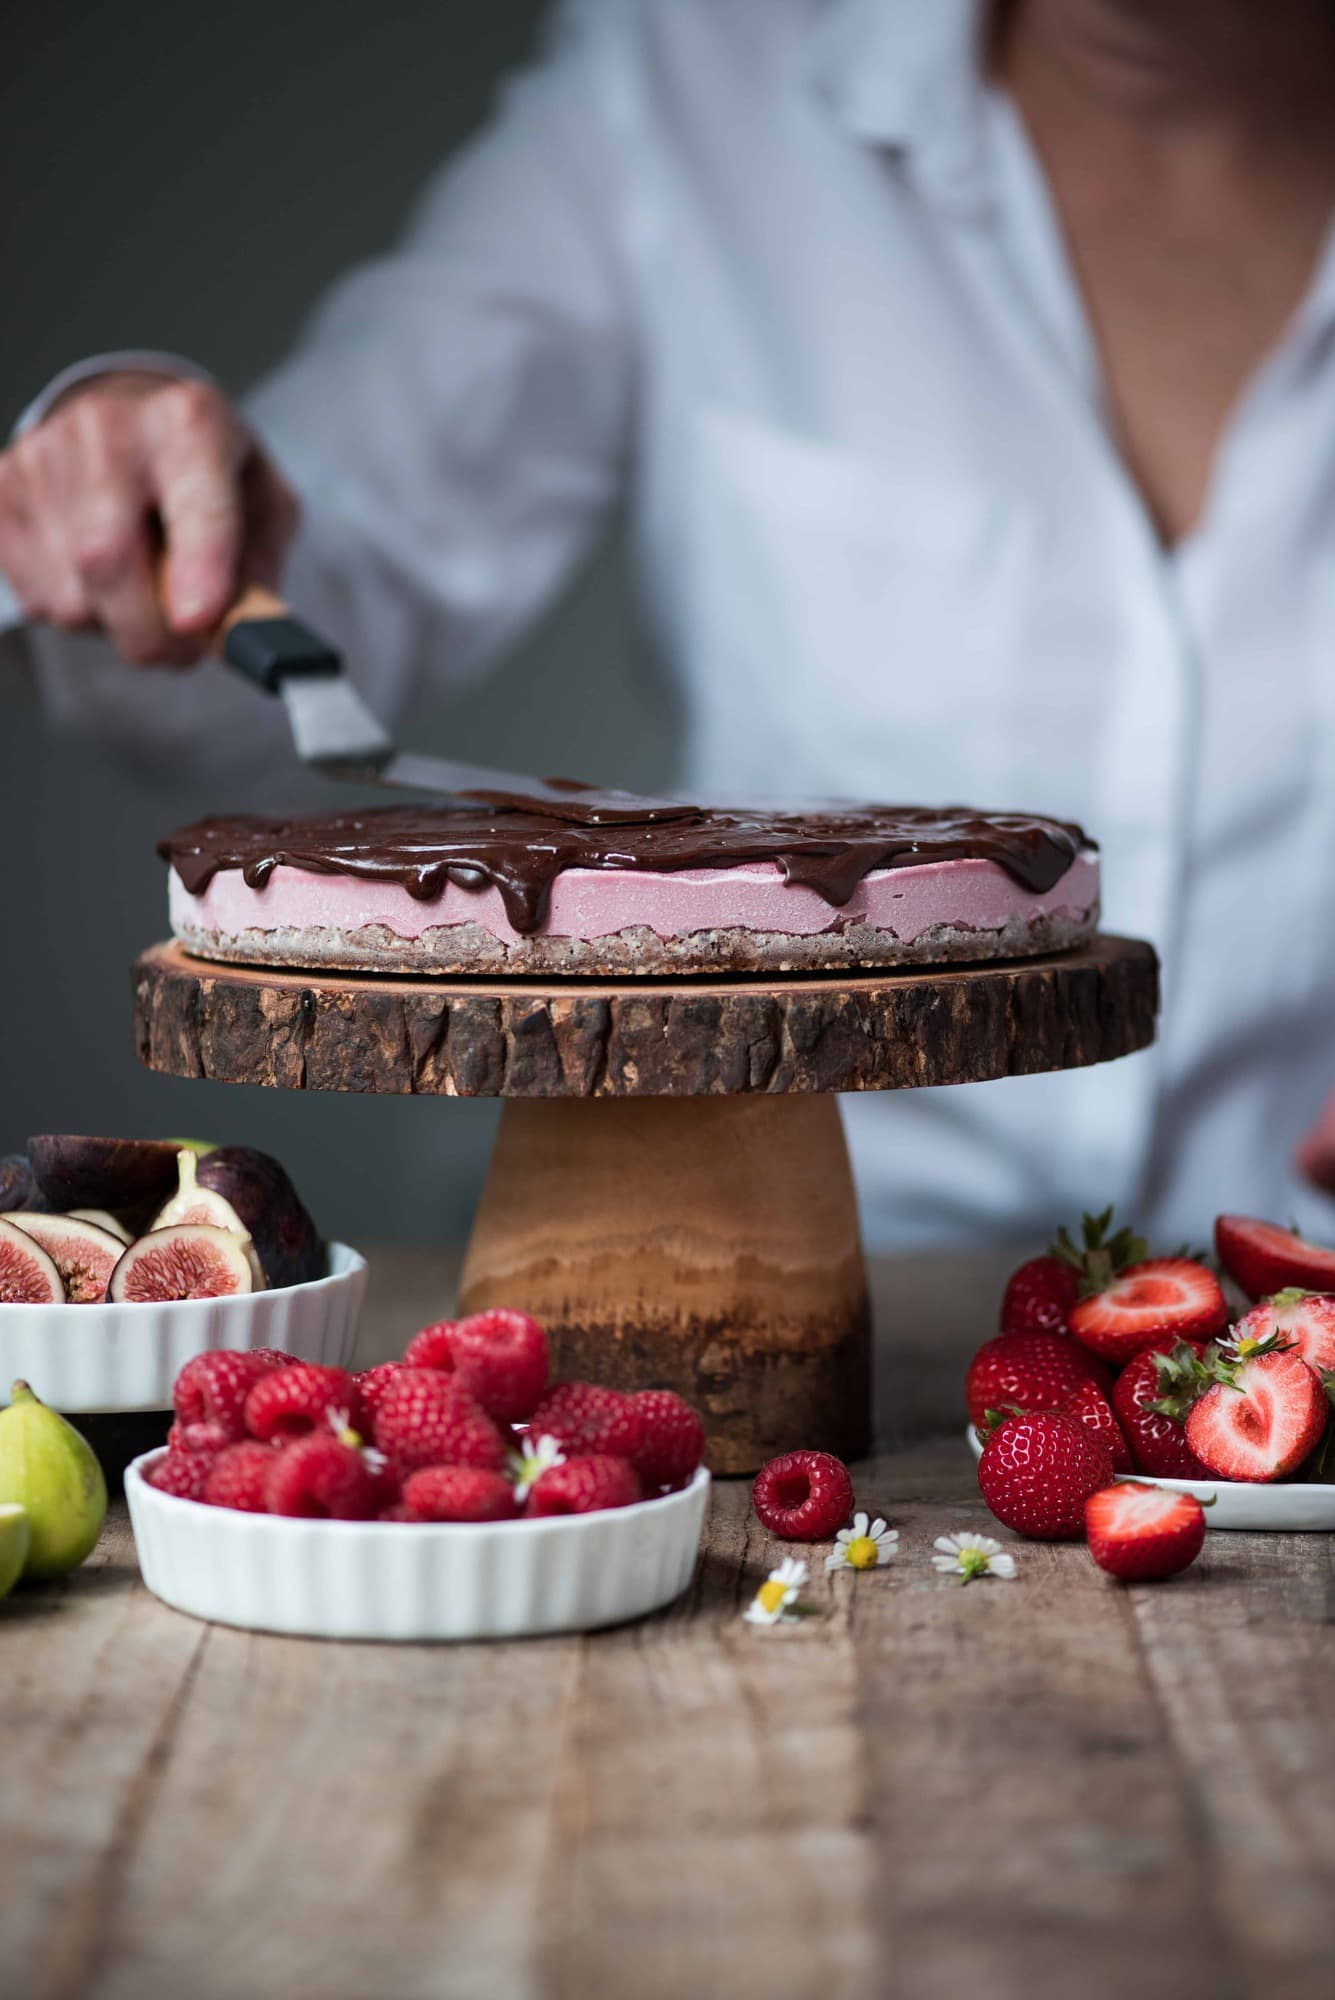 Spreading chocolate ganache on vegan berry cheesecake on wooden cake stand surrounded by bowls of fresh fruit